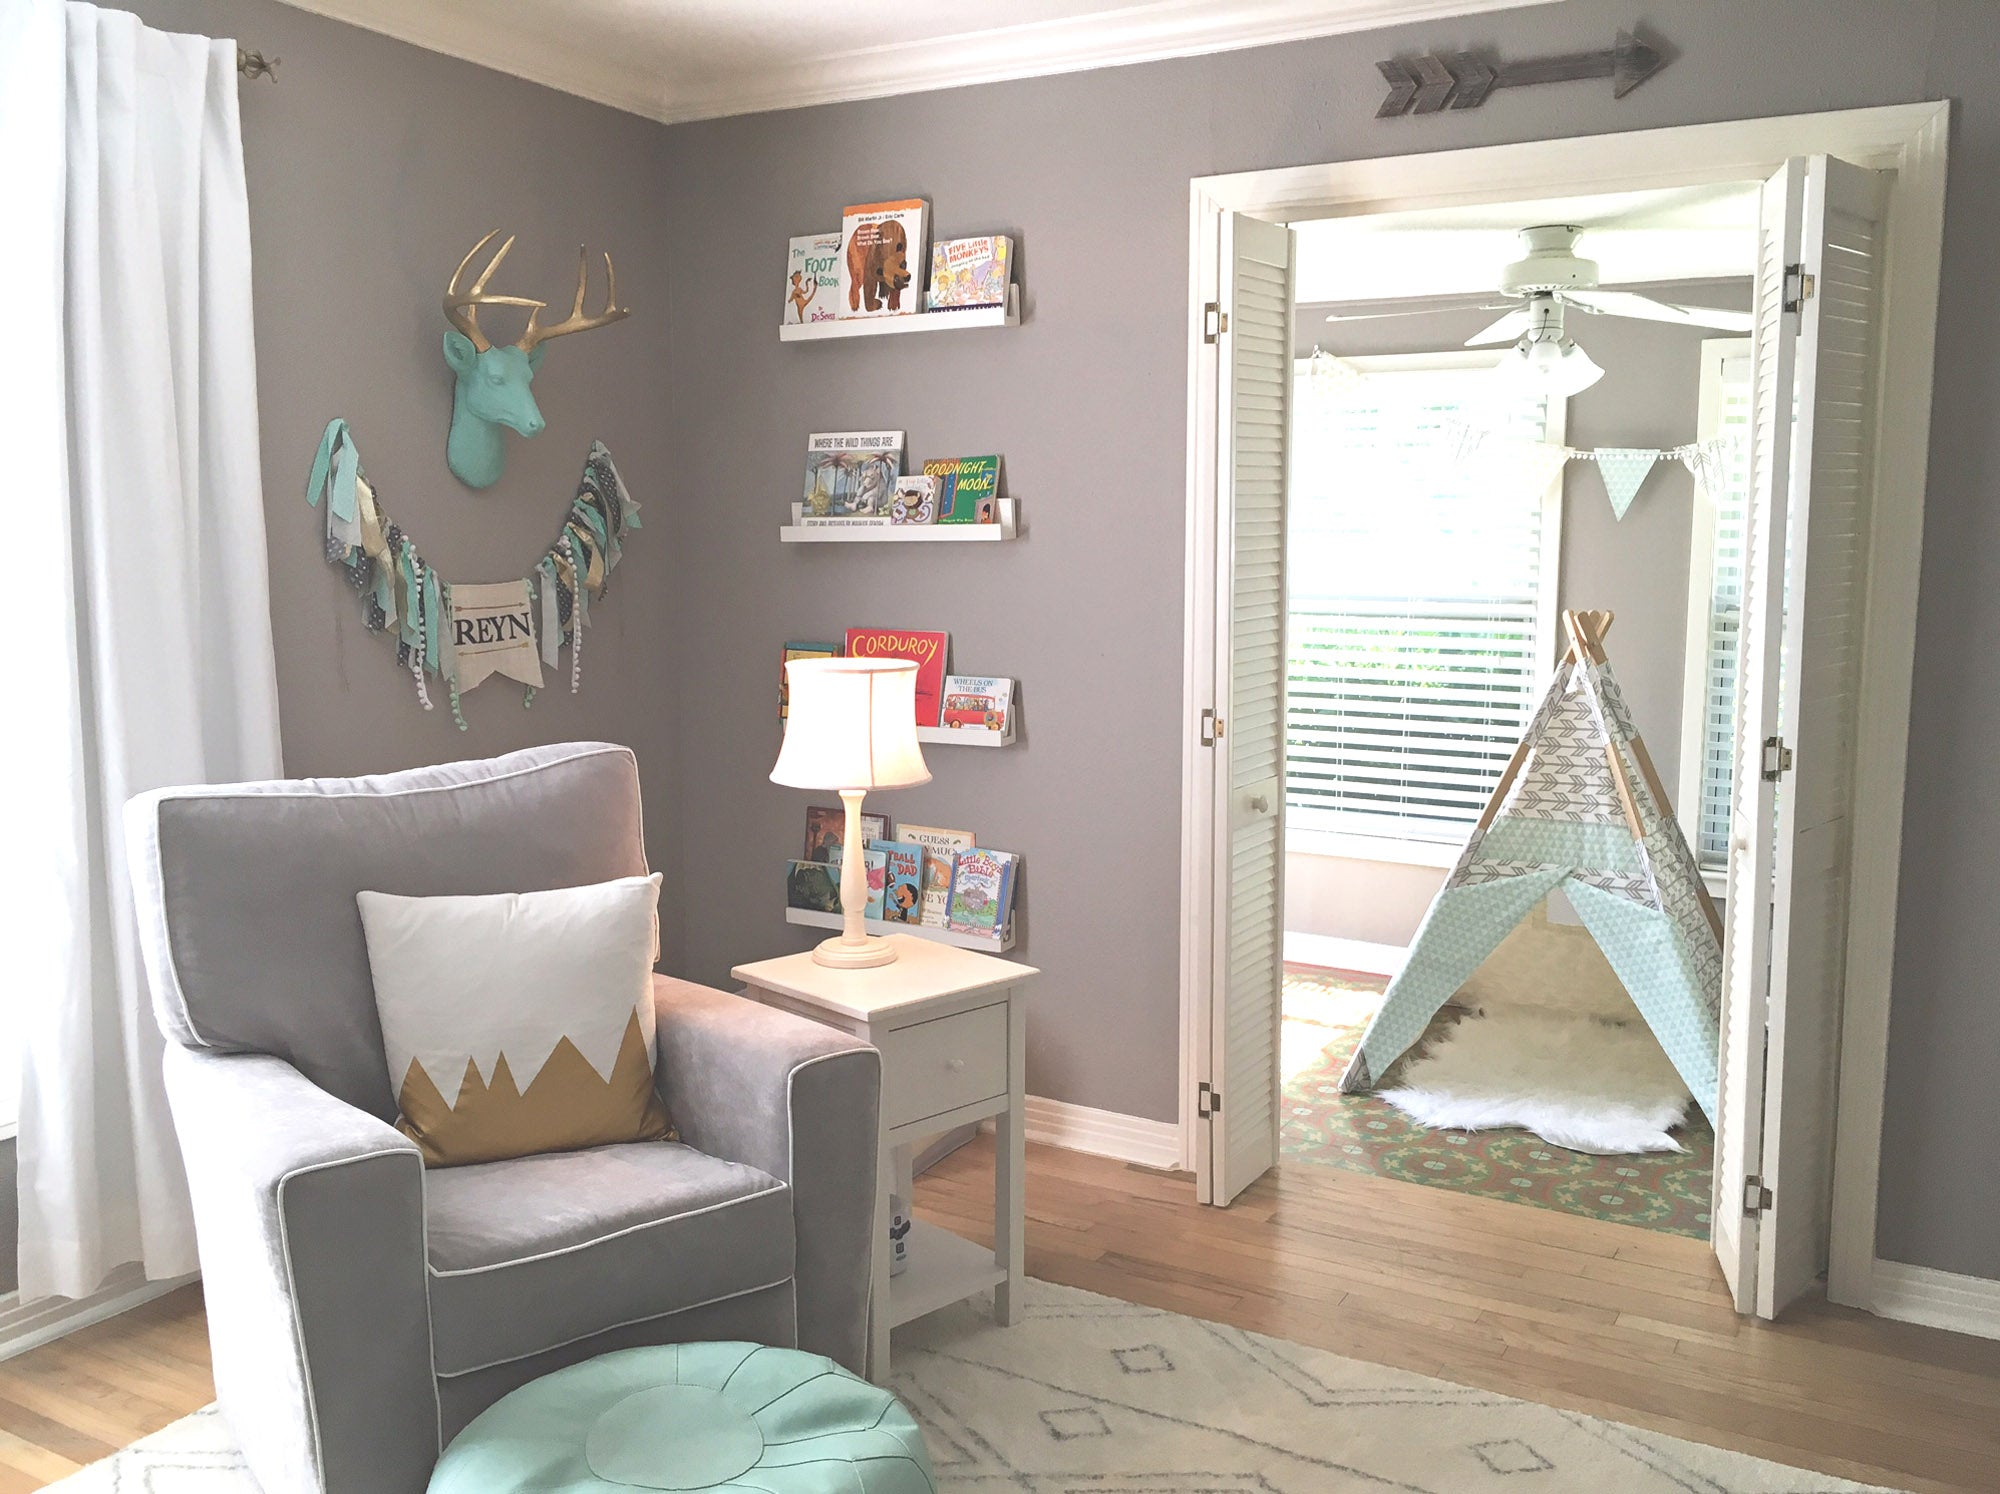 Amazing Sunroom Attached to Baby Reyn's Woodland Nursery with a Gray Arrow TeePee